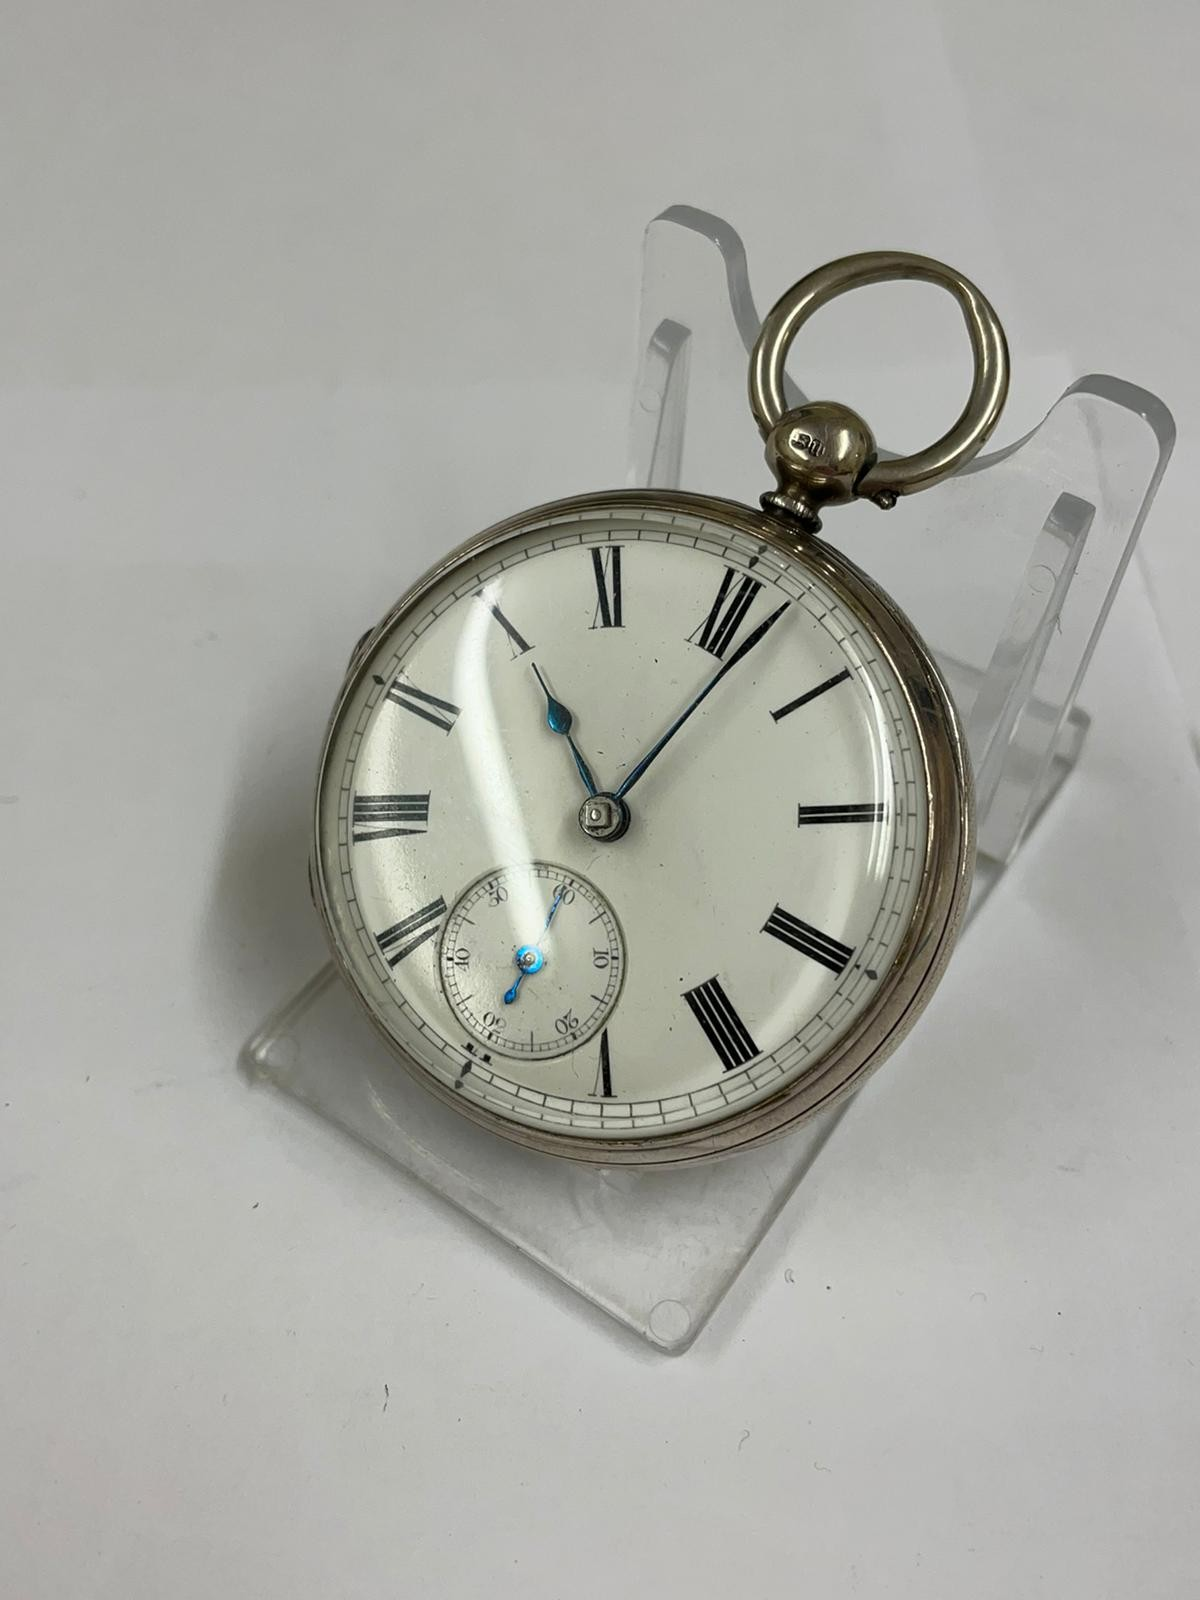 Antique gents silver fusee ( mercer London ) pocket watch no key tick if shaken sold as found - Image 4 of 6